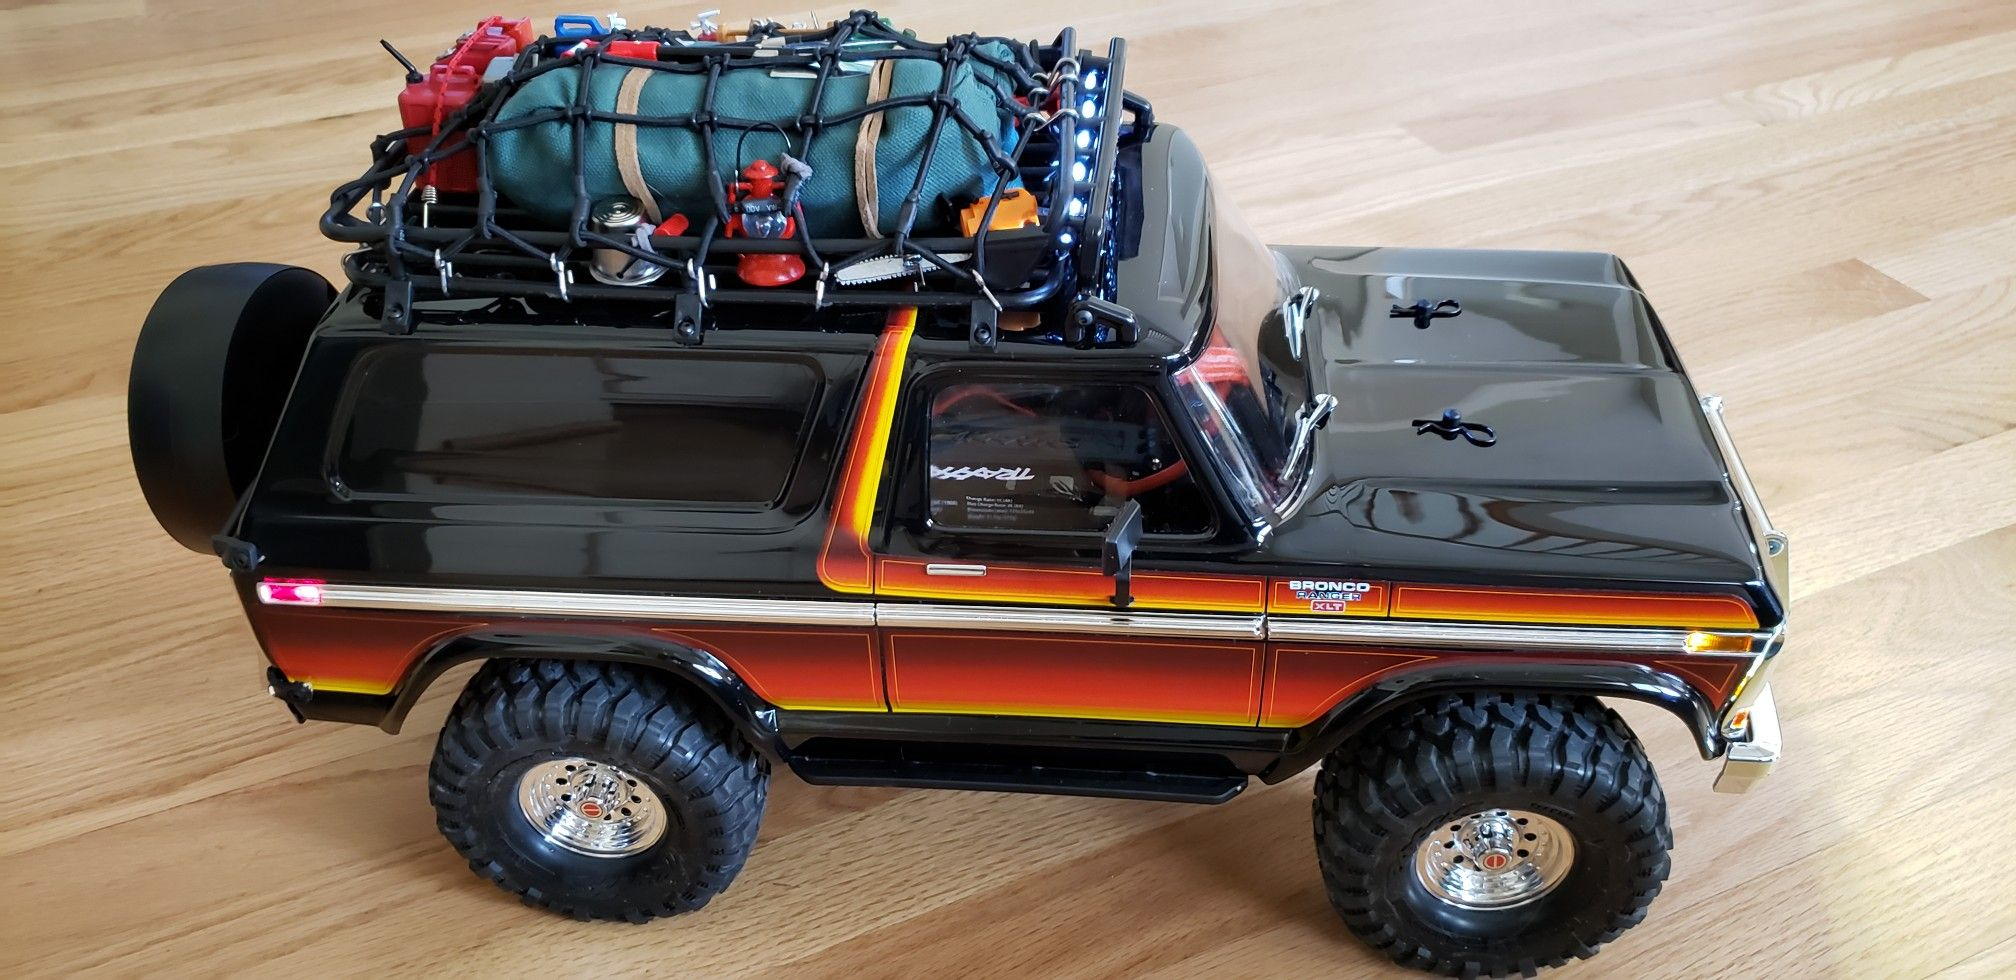 Traxxas Trx4 Ford Bronco With Roof Rack Cargo Net Roof Mount Light Bar And Lots And Lots 1 10 Scale Accessories As Going Super Ford Bronco Traxxas Roof Rack